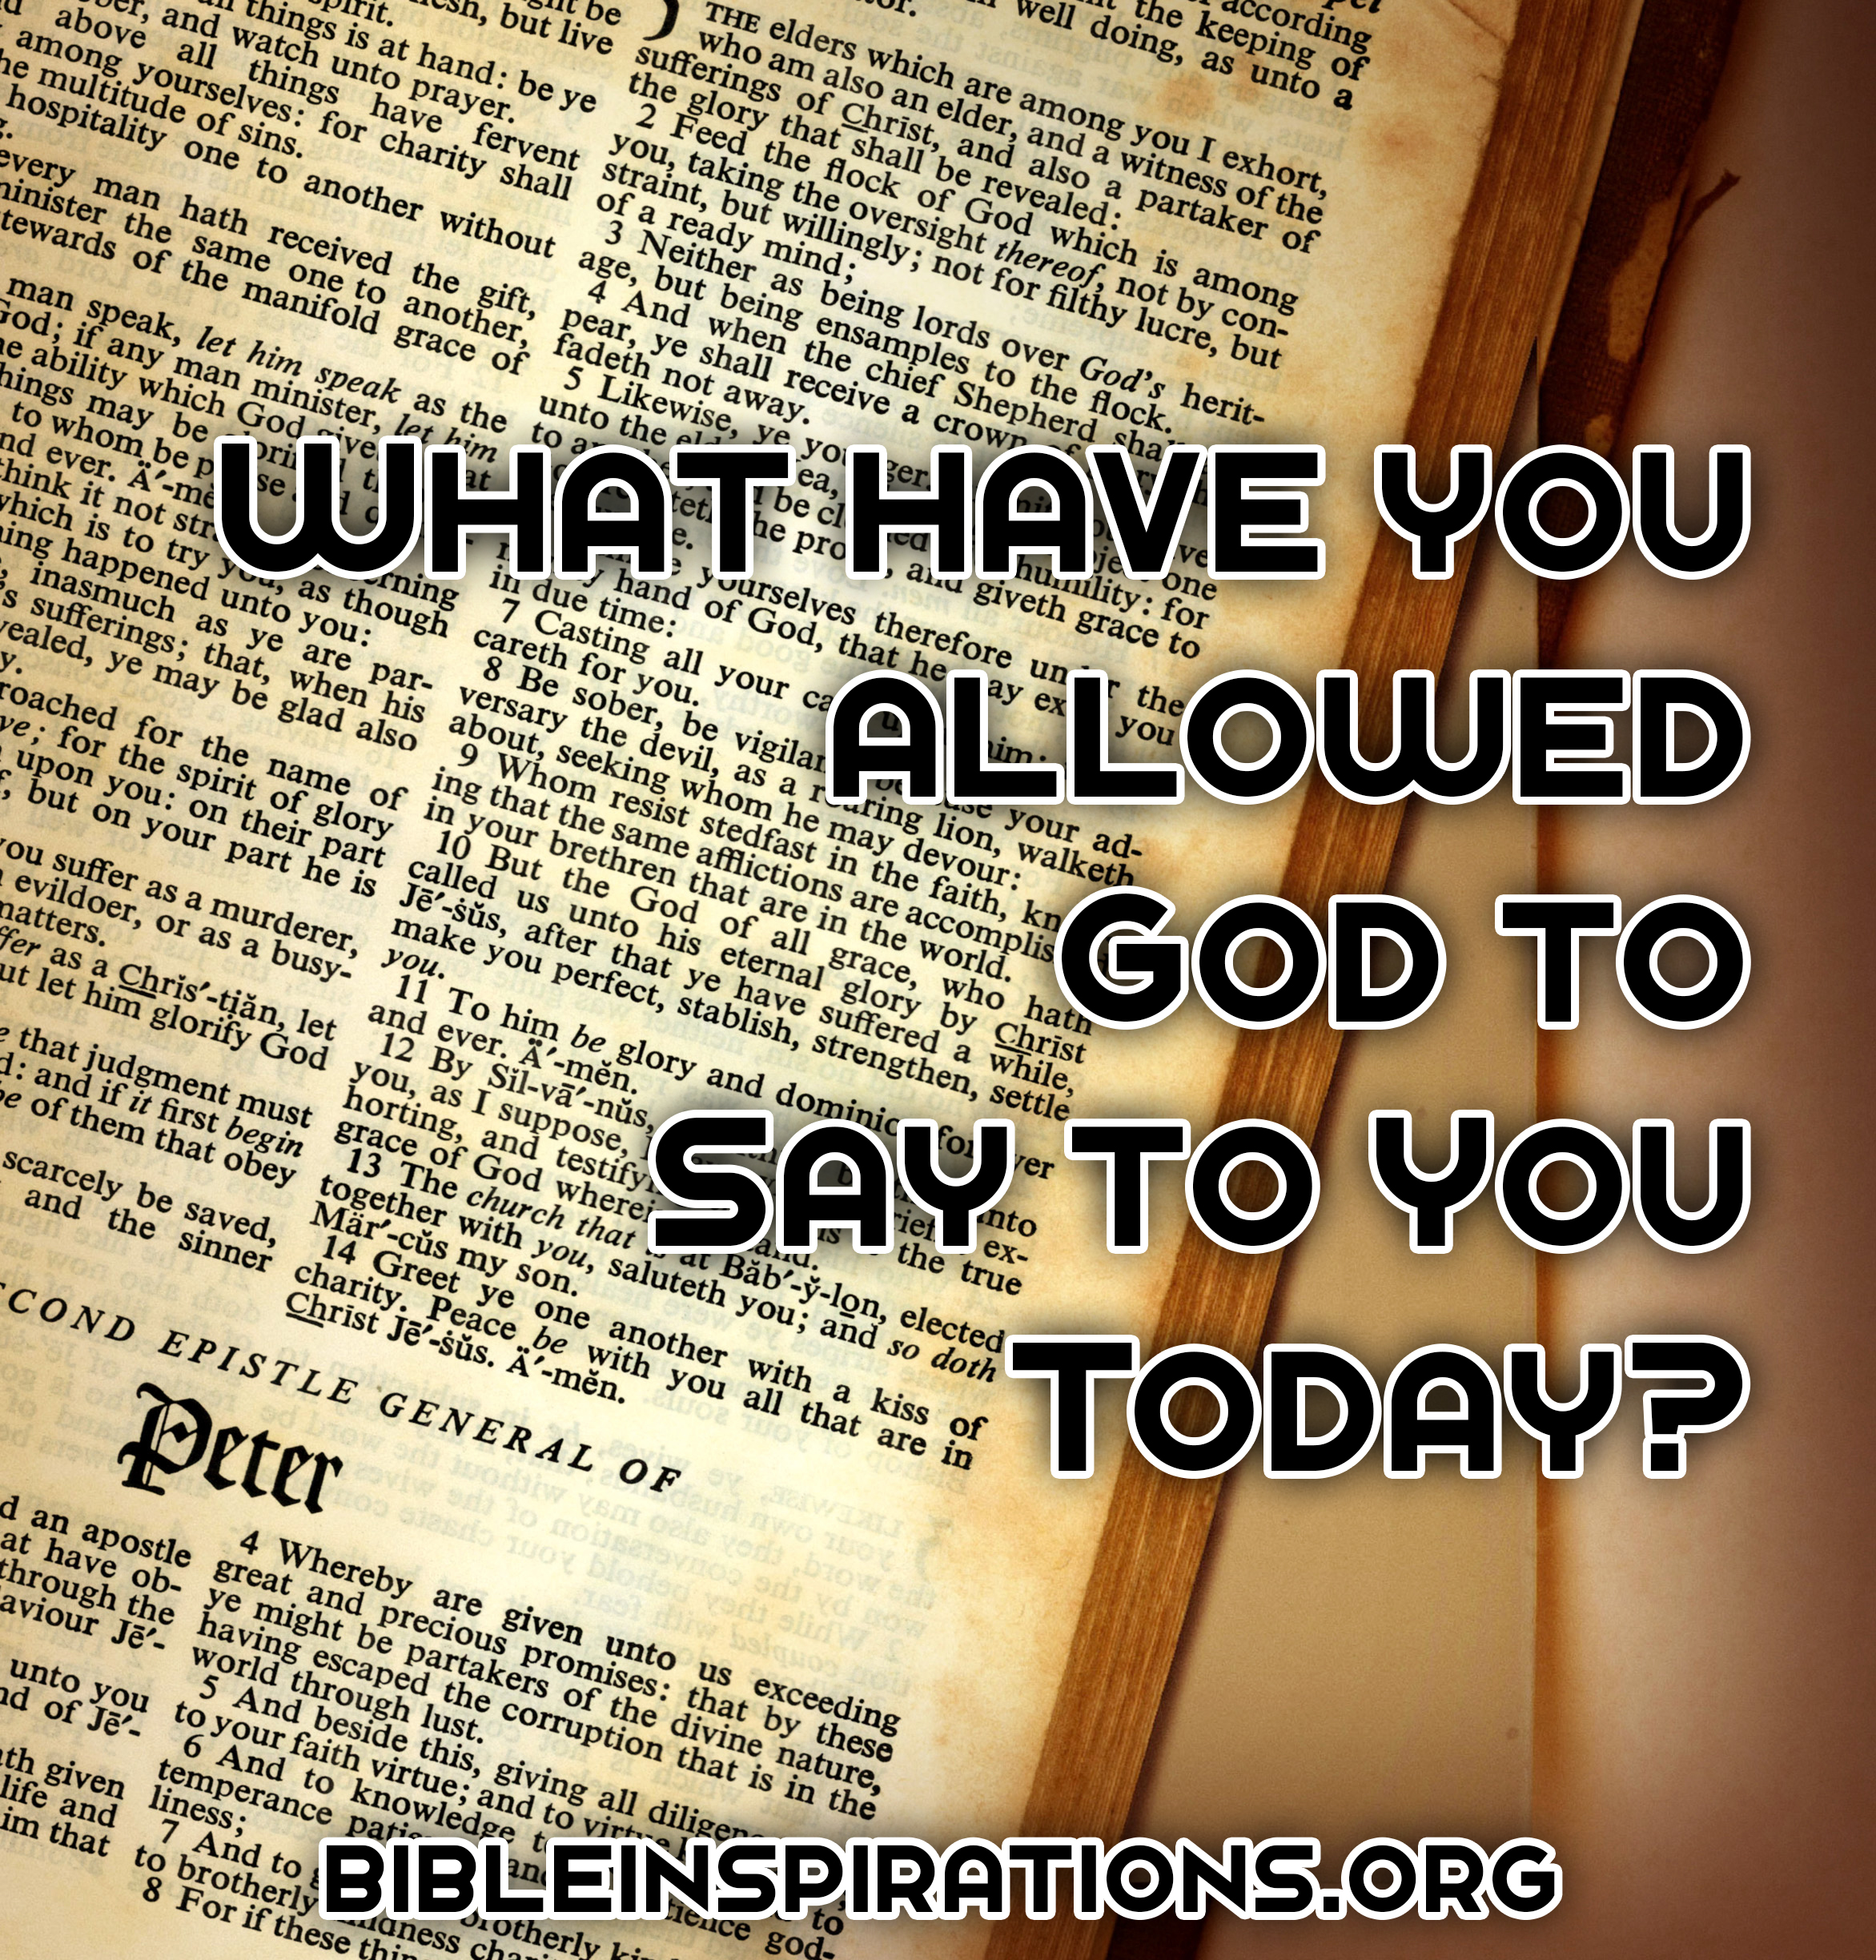 what-have-you-allowed-god-to-say-to-you-today